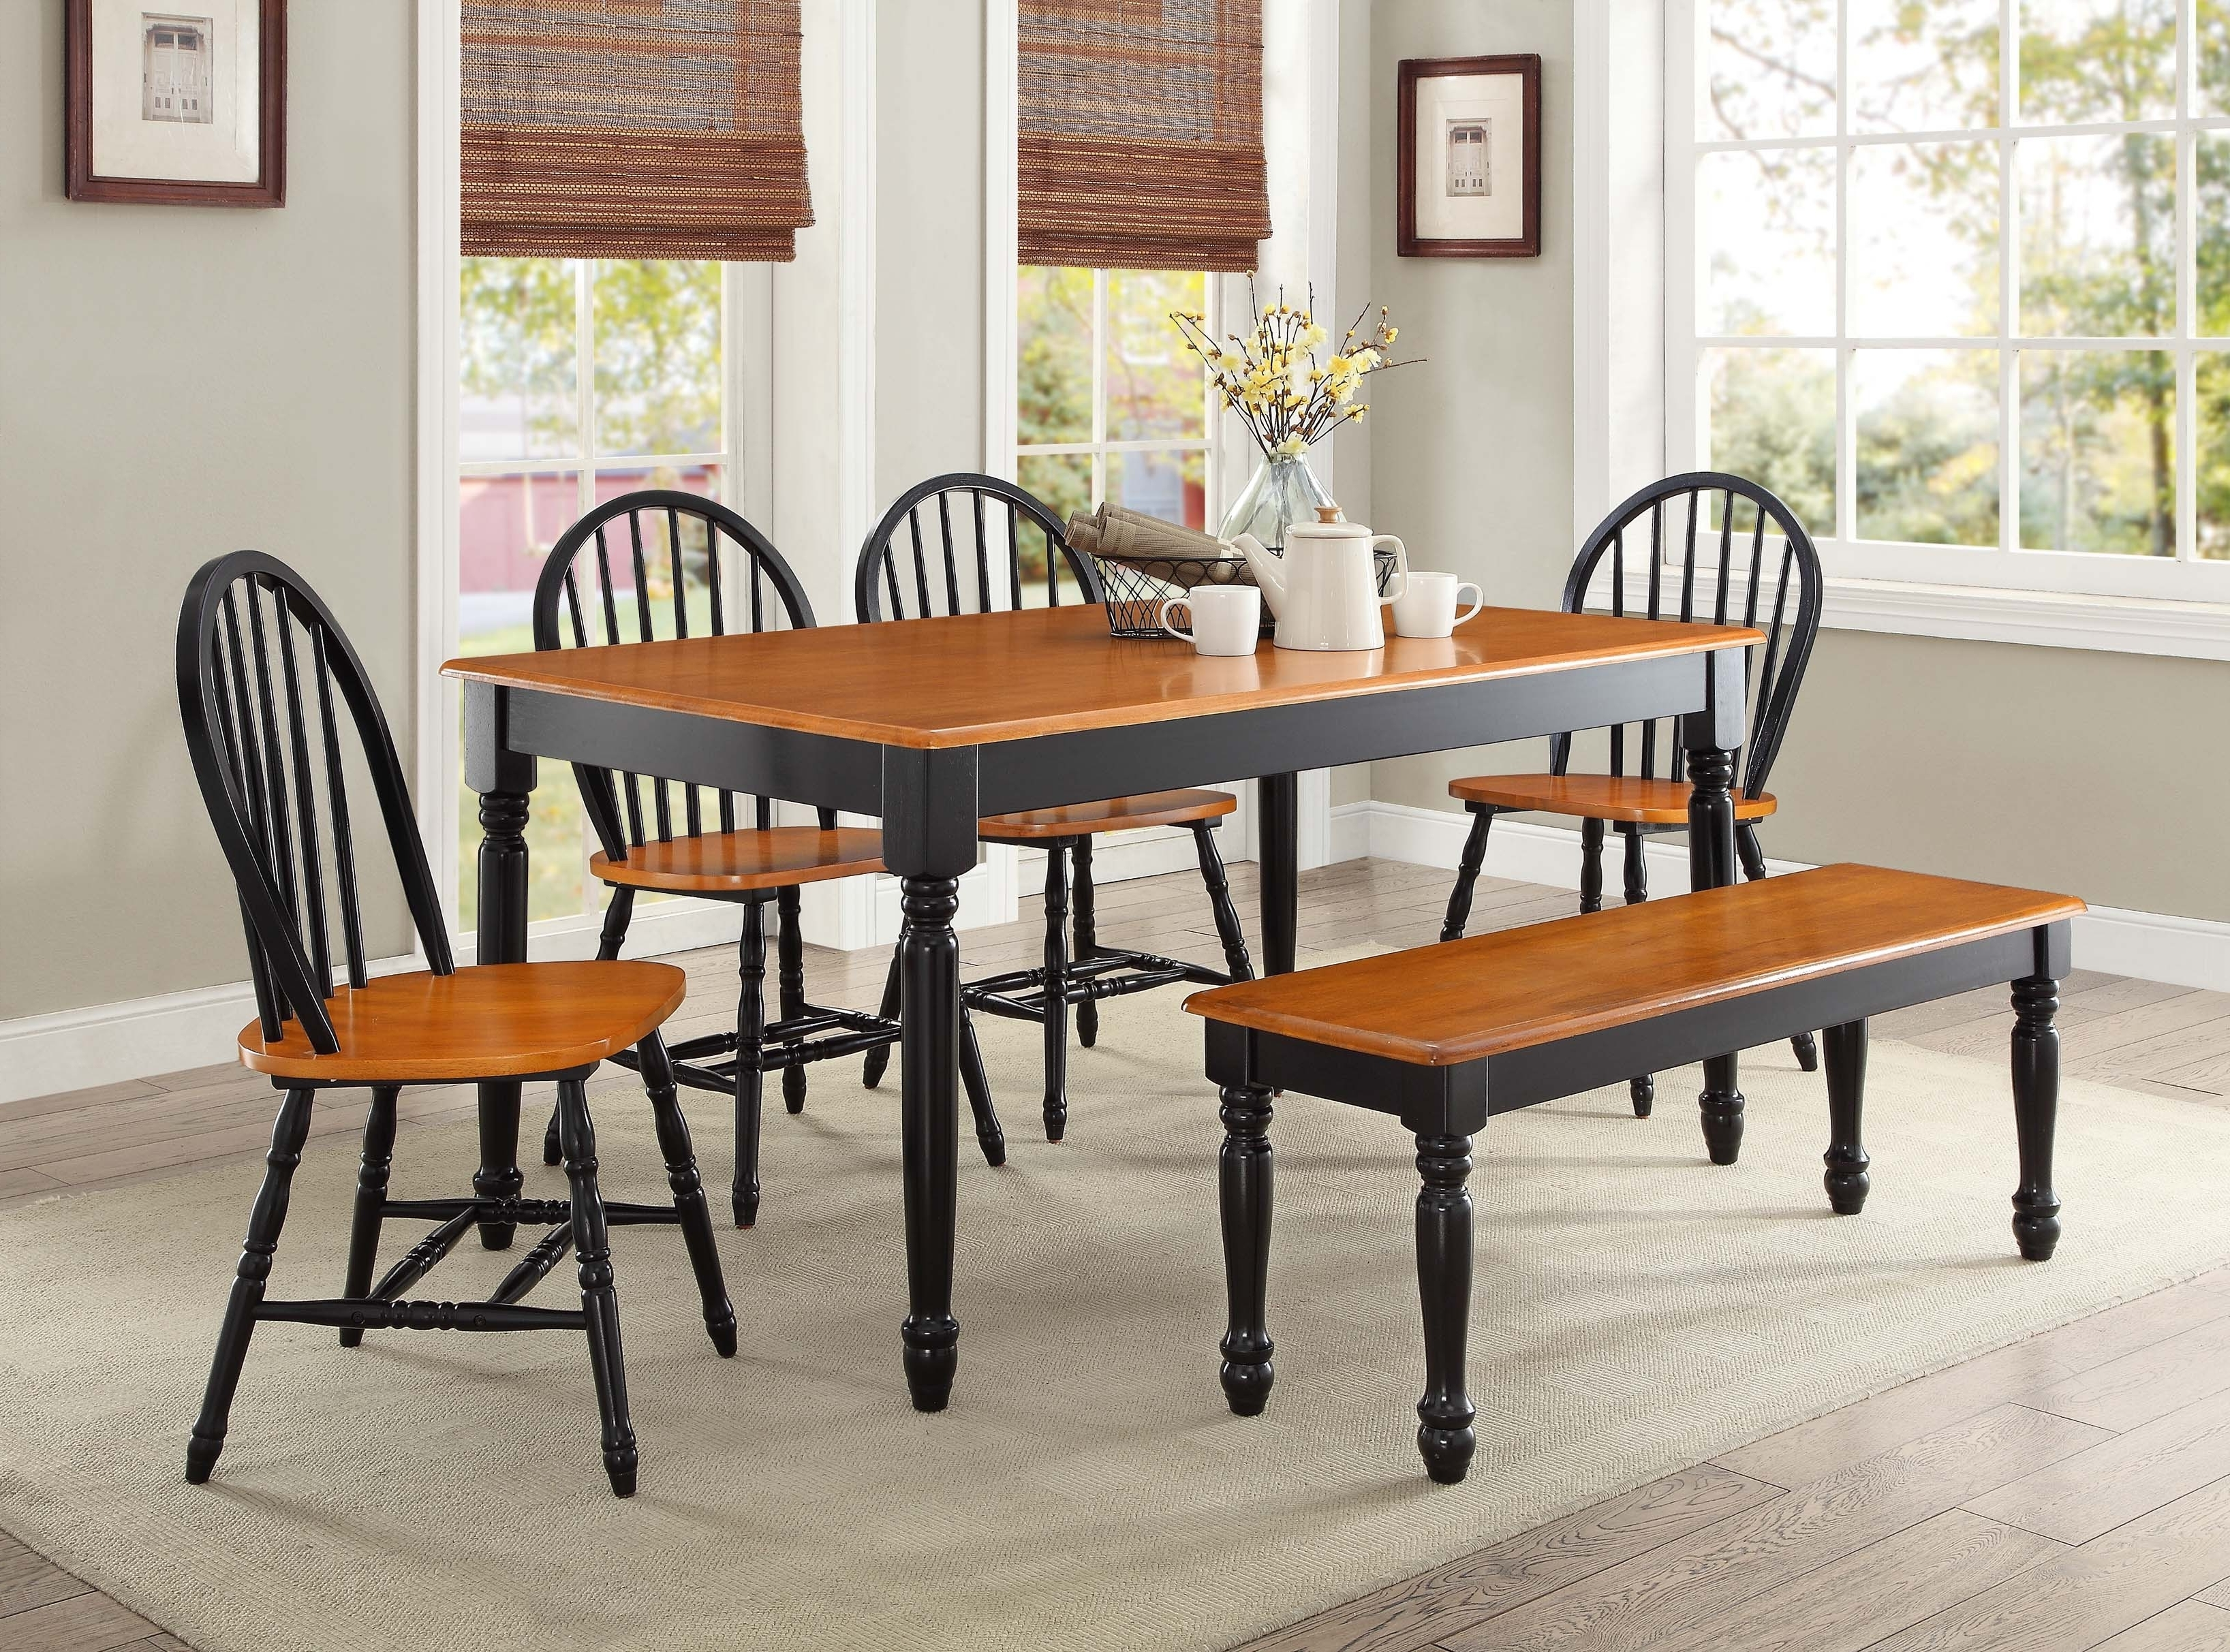 Black 8 Seater Dining Tables With Well Known Dining Tables 8 Seater Elegant Luxury 10 Person Dining Table (View 24 of 25)